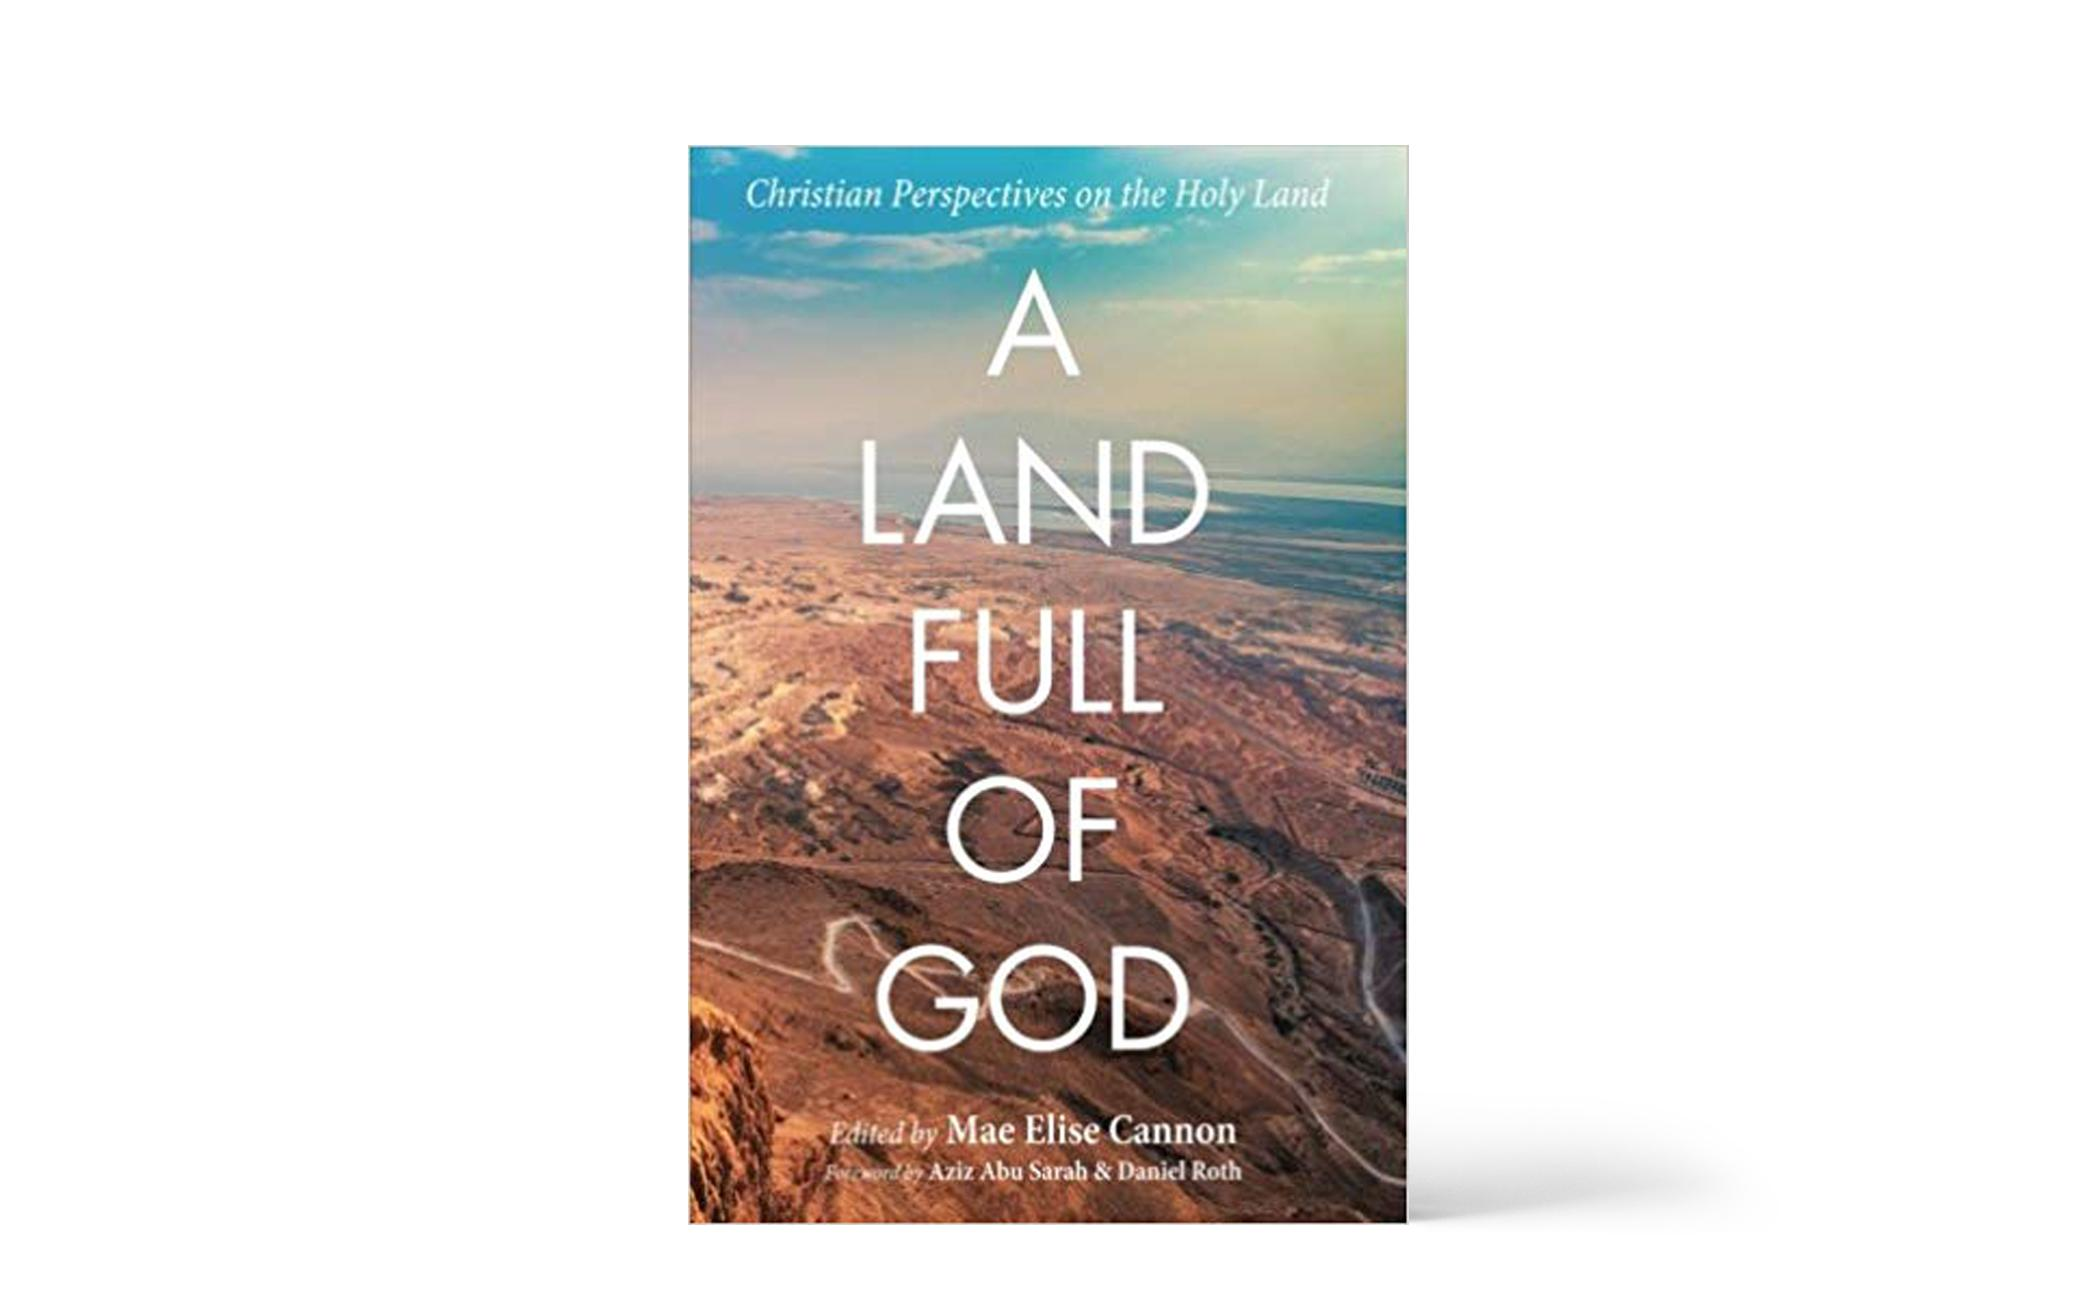 Reader-Submitted Review: A Land Full of God: Christian Perspectives on the Holy Land